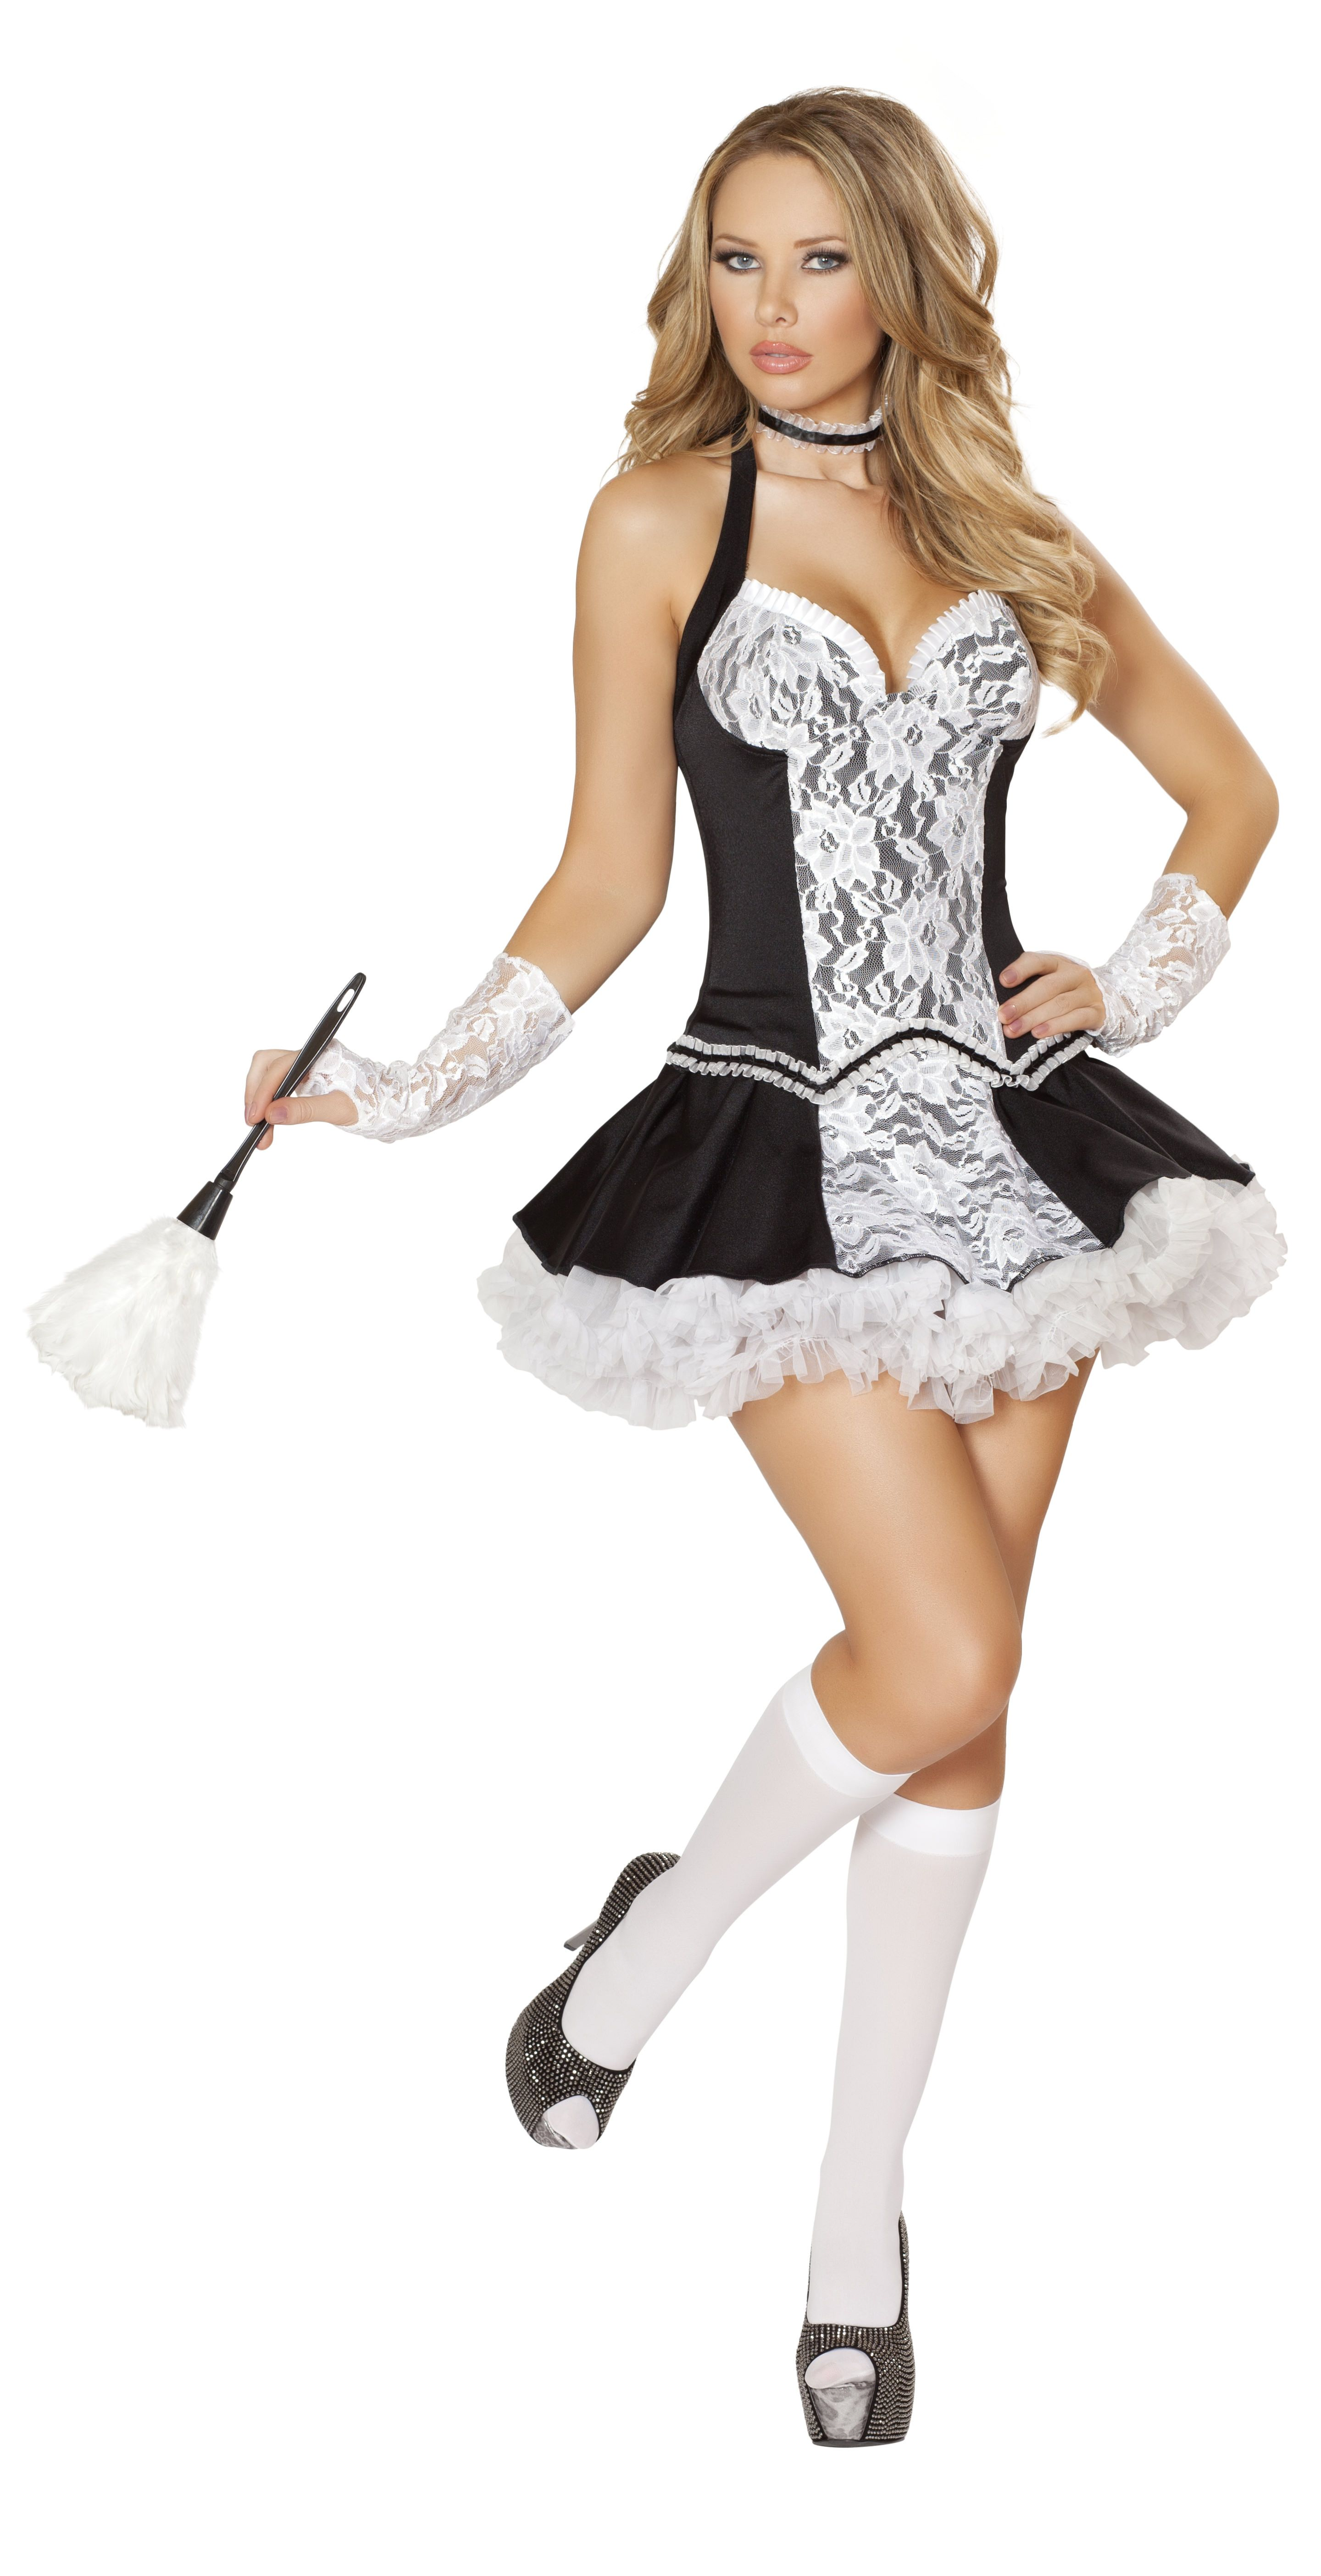 Roxanni 4538 5pc Cleaning Cutie Costume by Roma Halloween Costume  sc 1 st  Pinterest & Roxanni 4538 5pc Cleaning Cutie Costume by Roma Halloween Costume ...